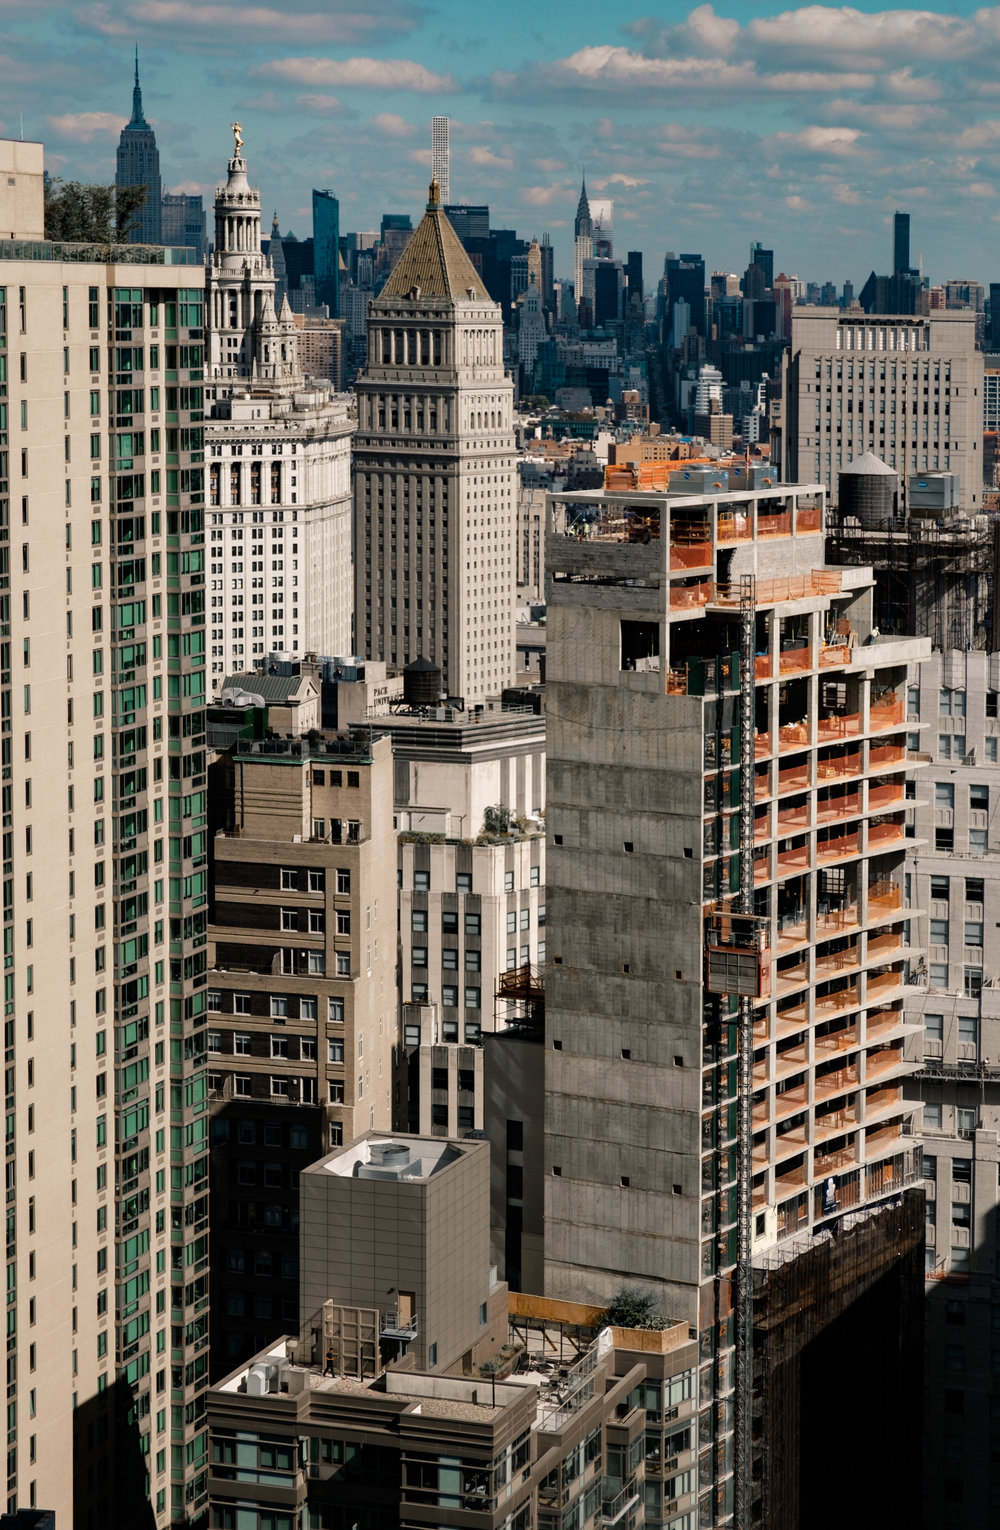 A view of Manhattan from a private balcony near Wallstreet